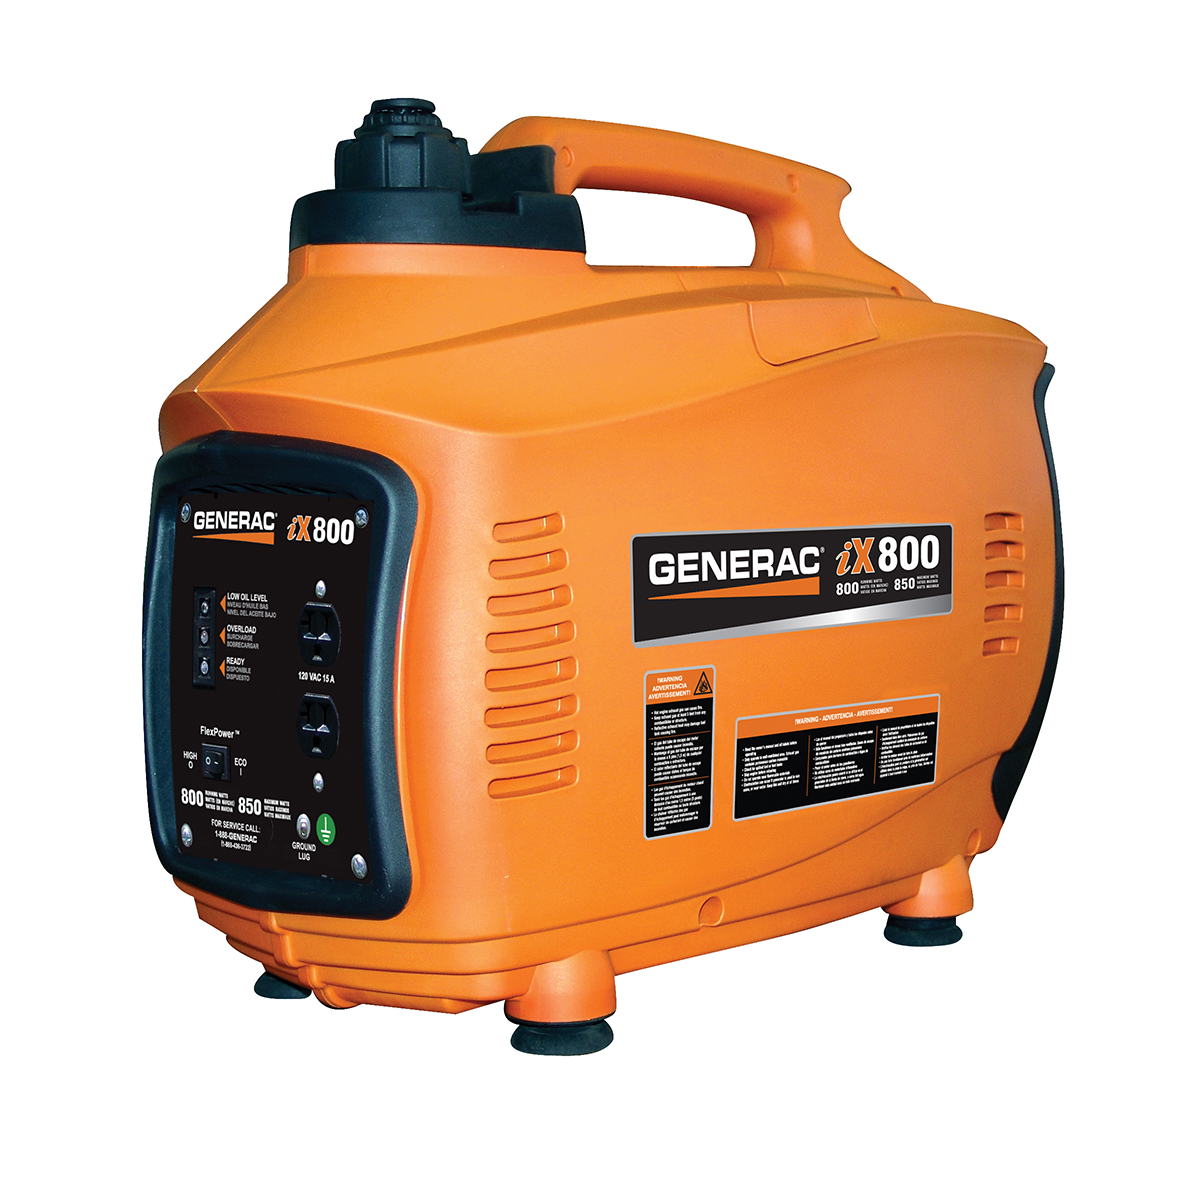 Portable generators can provide power to tools for uses around the home, lights while camping or tailgating, and even for work on construction sites. Standby generators are larger than portable generators and provide backup power to essential equipment and systems. Home standby generators are often used as a dependable backup in case of power outages. They run automatically and .